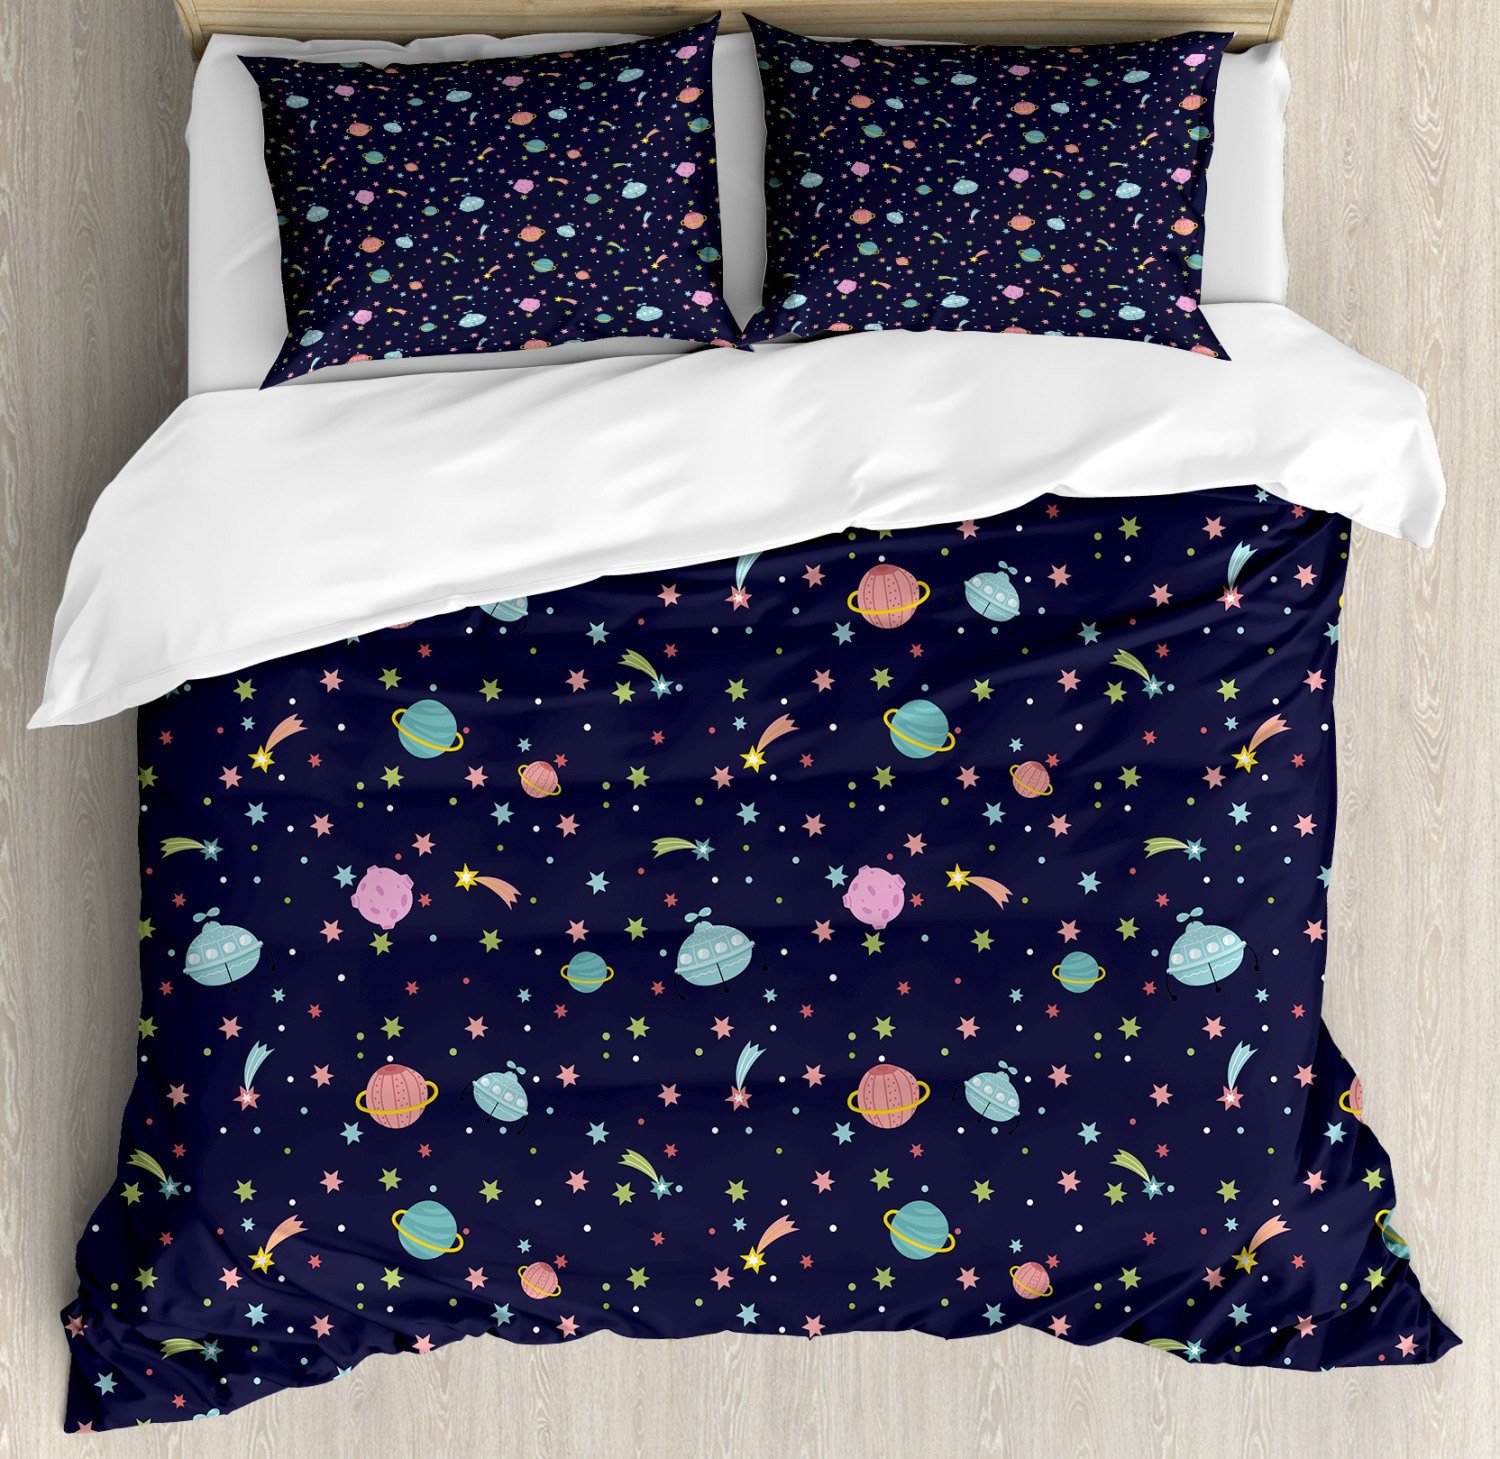 Space Duvet Cover Set with Pillow Shams Alien Planets Asteroid Print